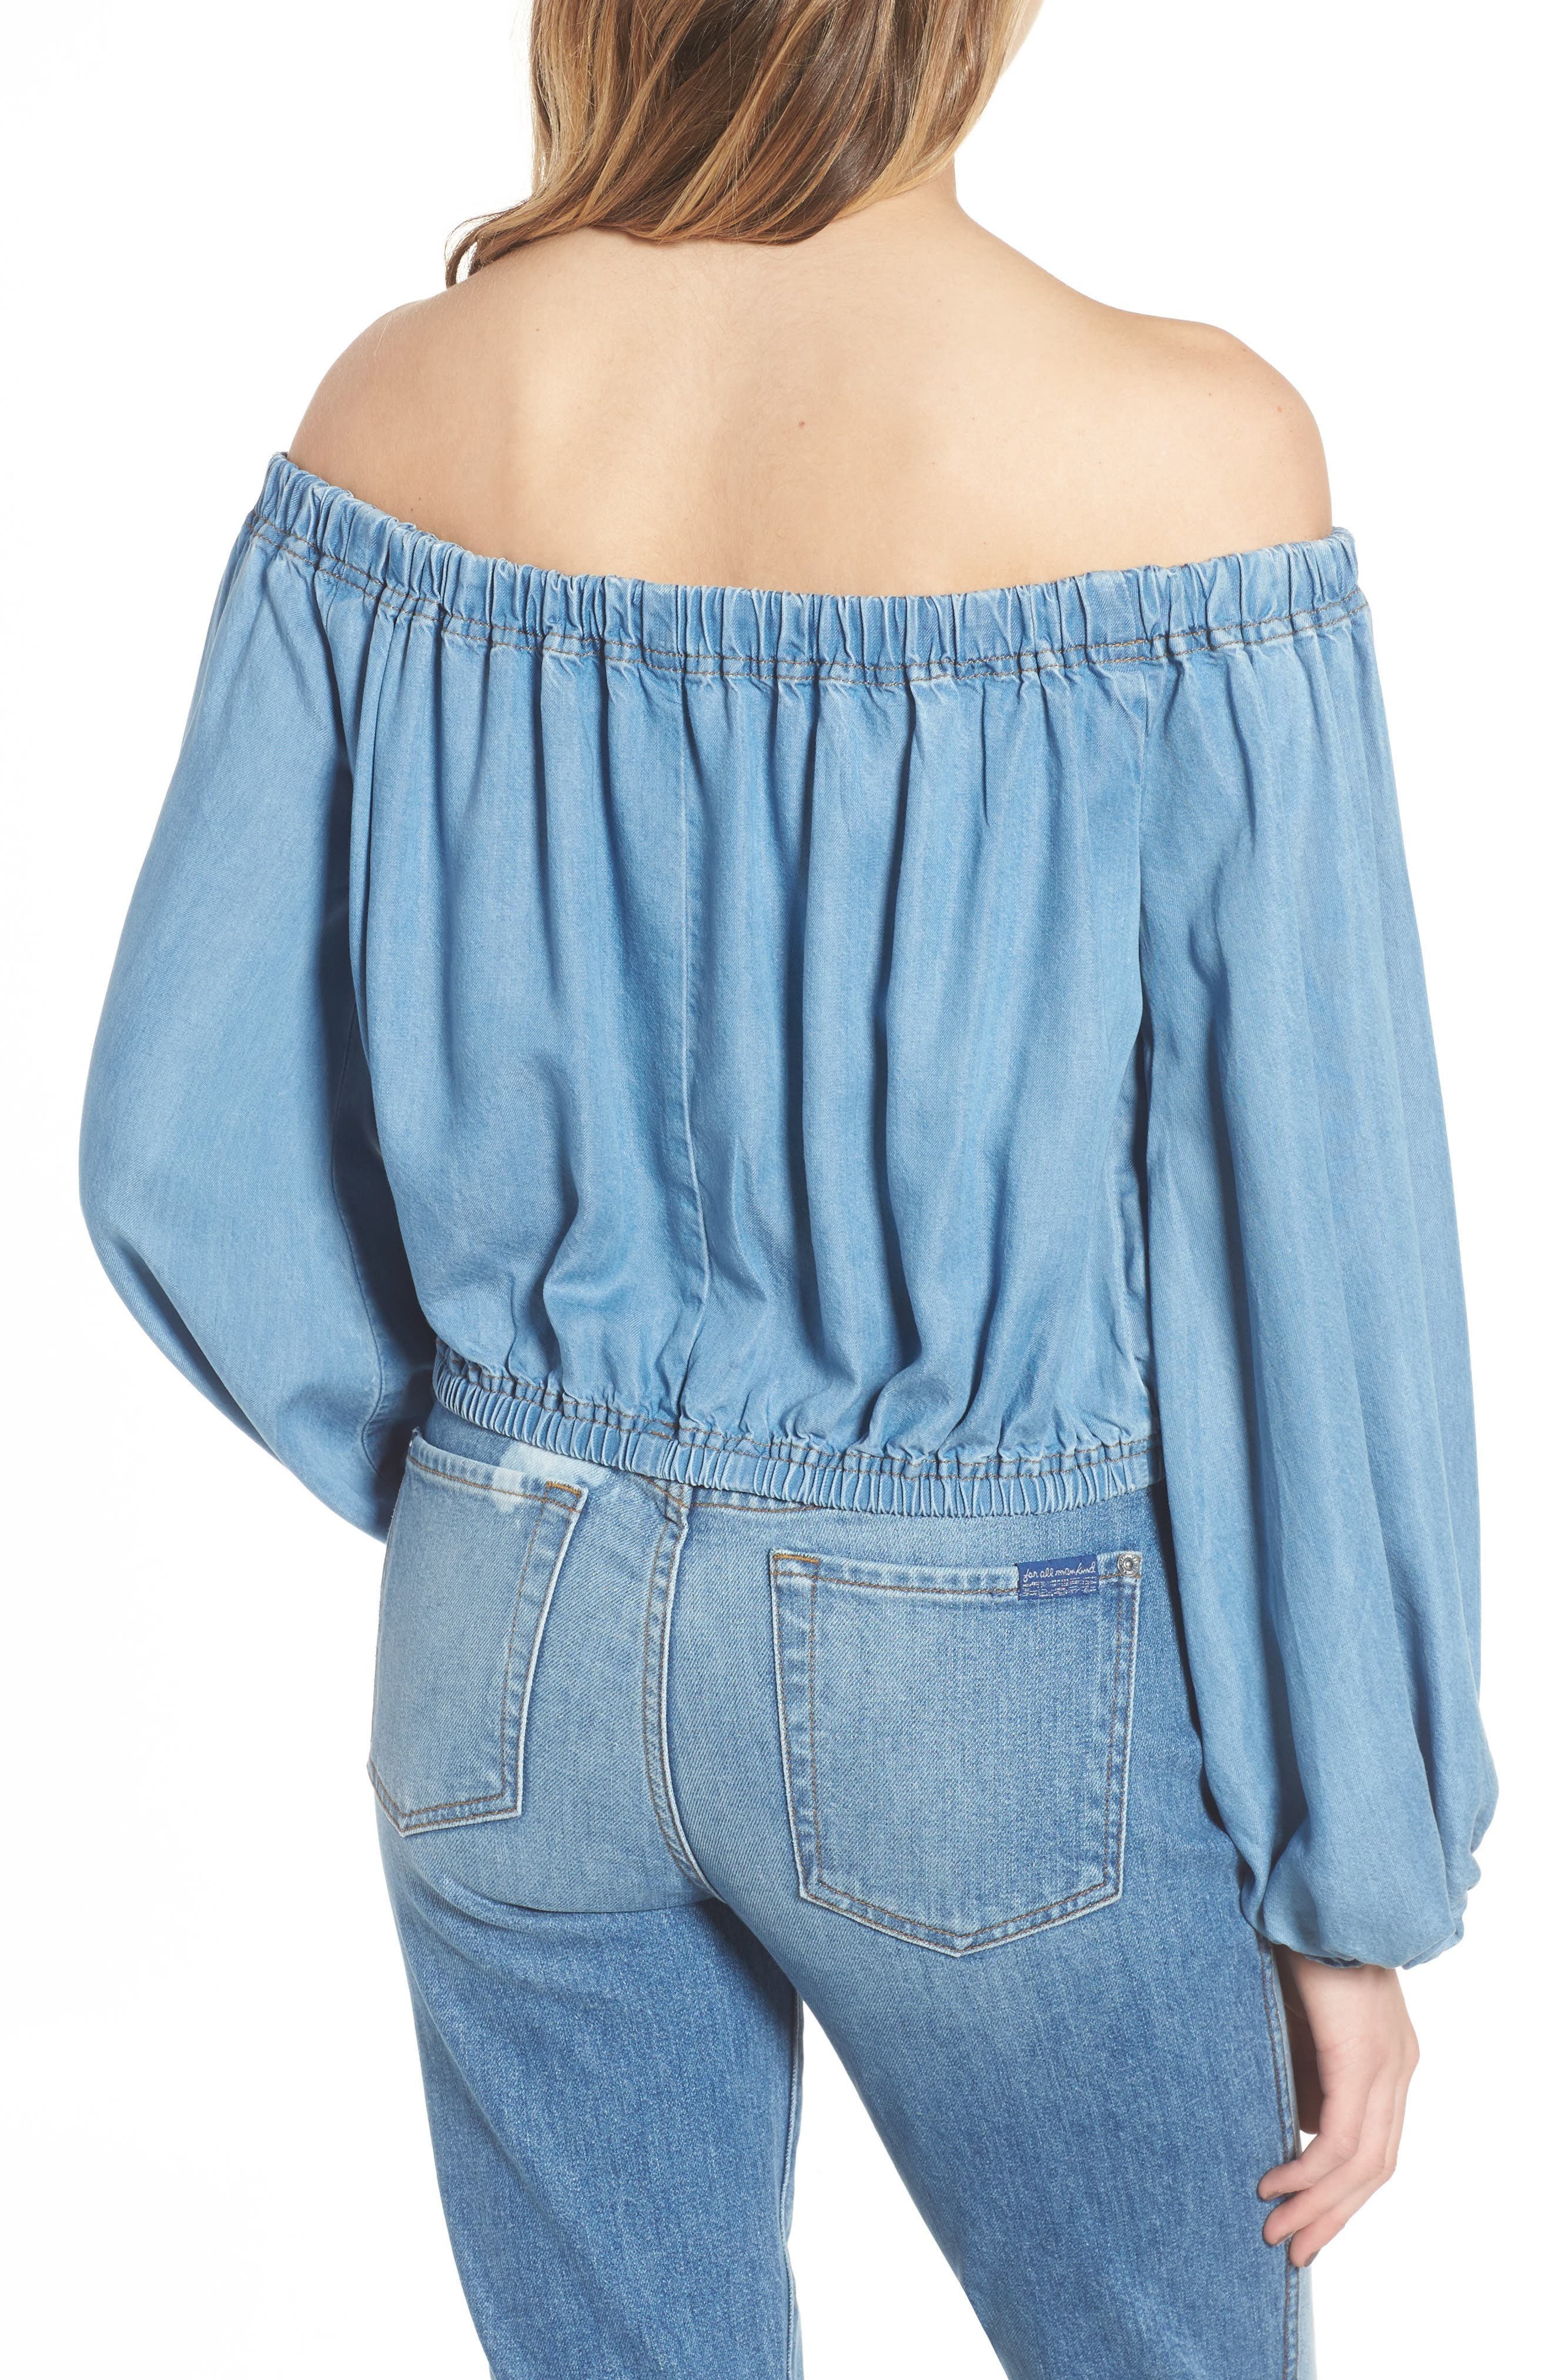 Blouson Off the Shoulder Denim Top,                             Alternate thumbnail 2, color,                             401